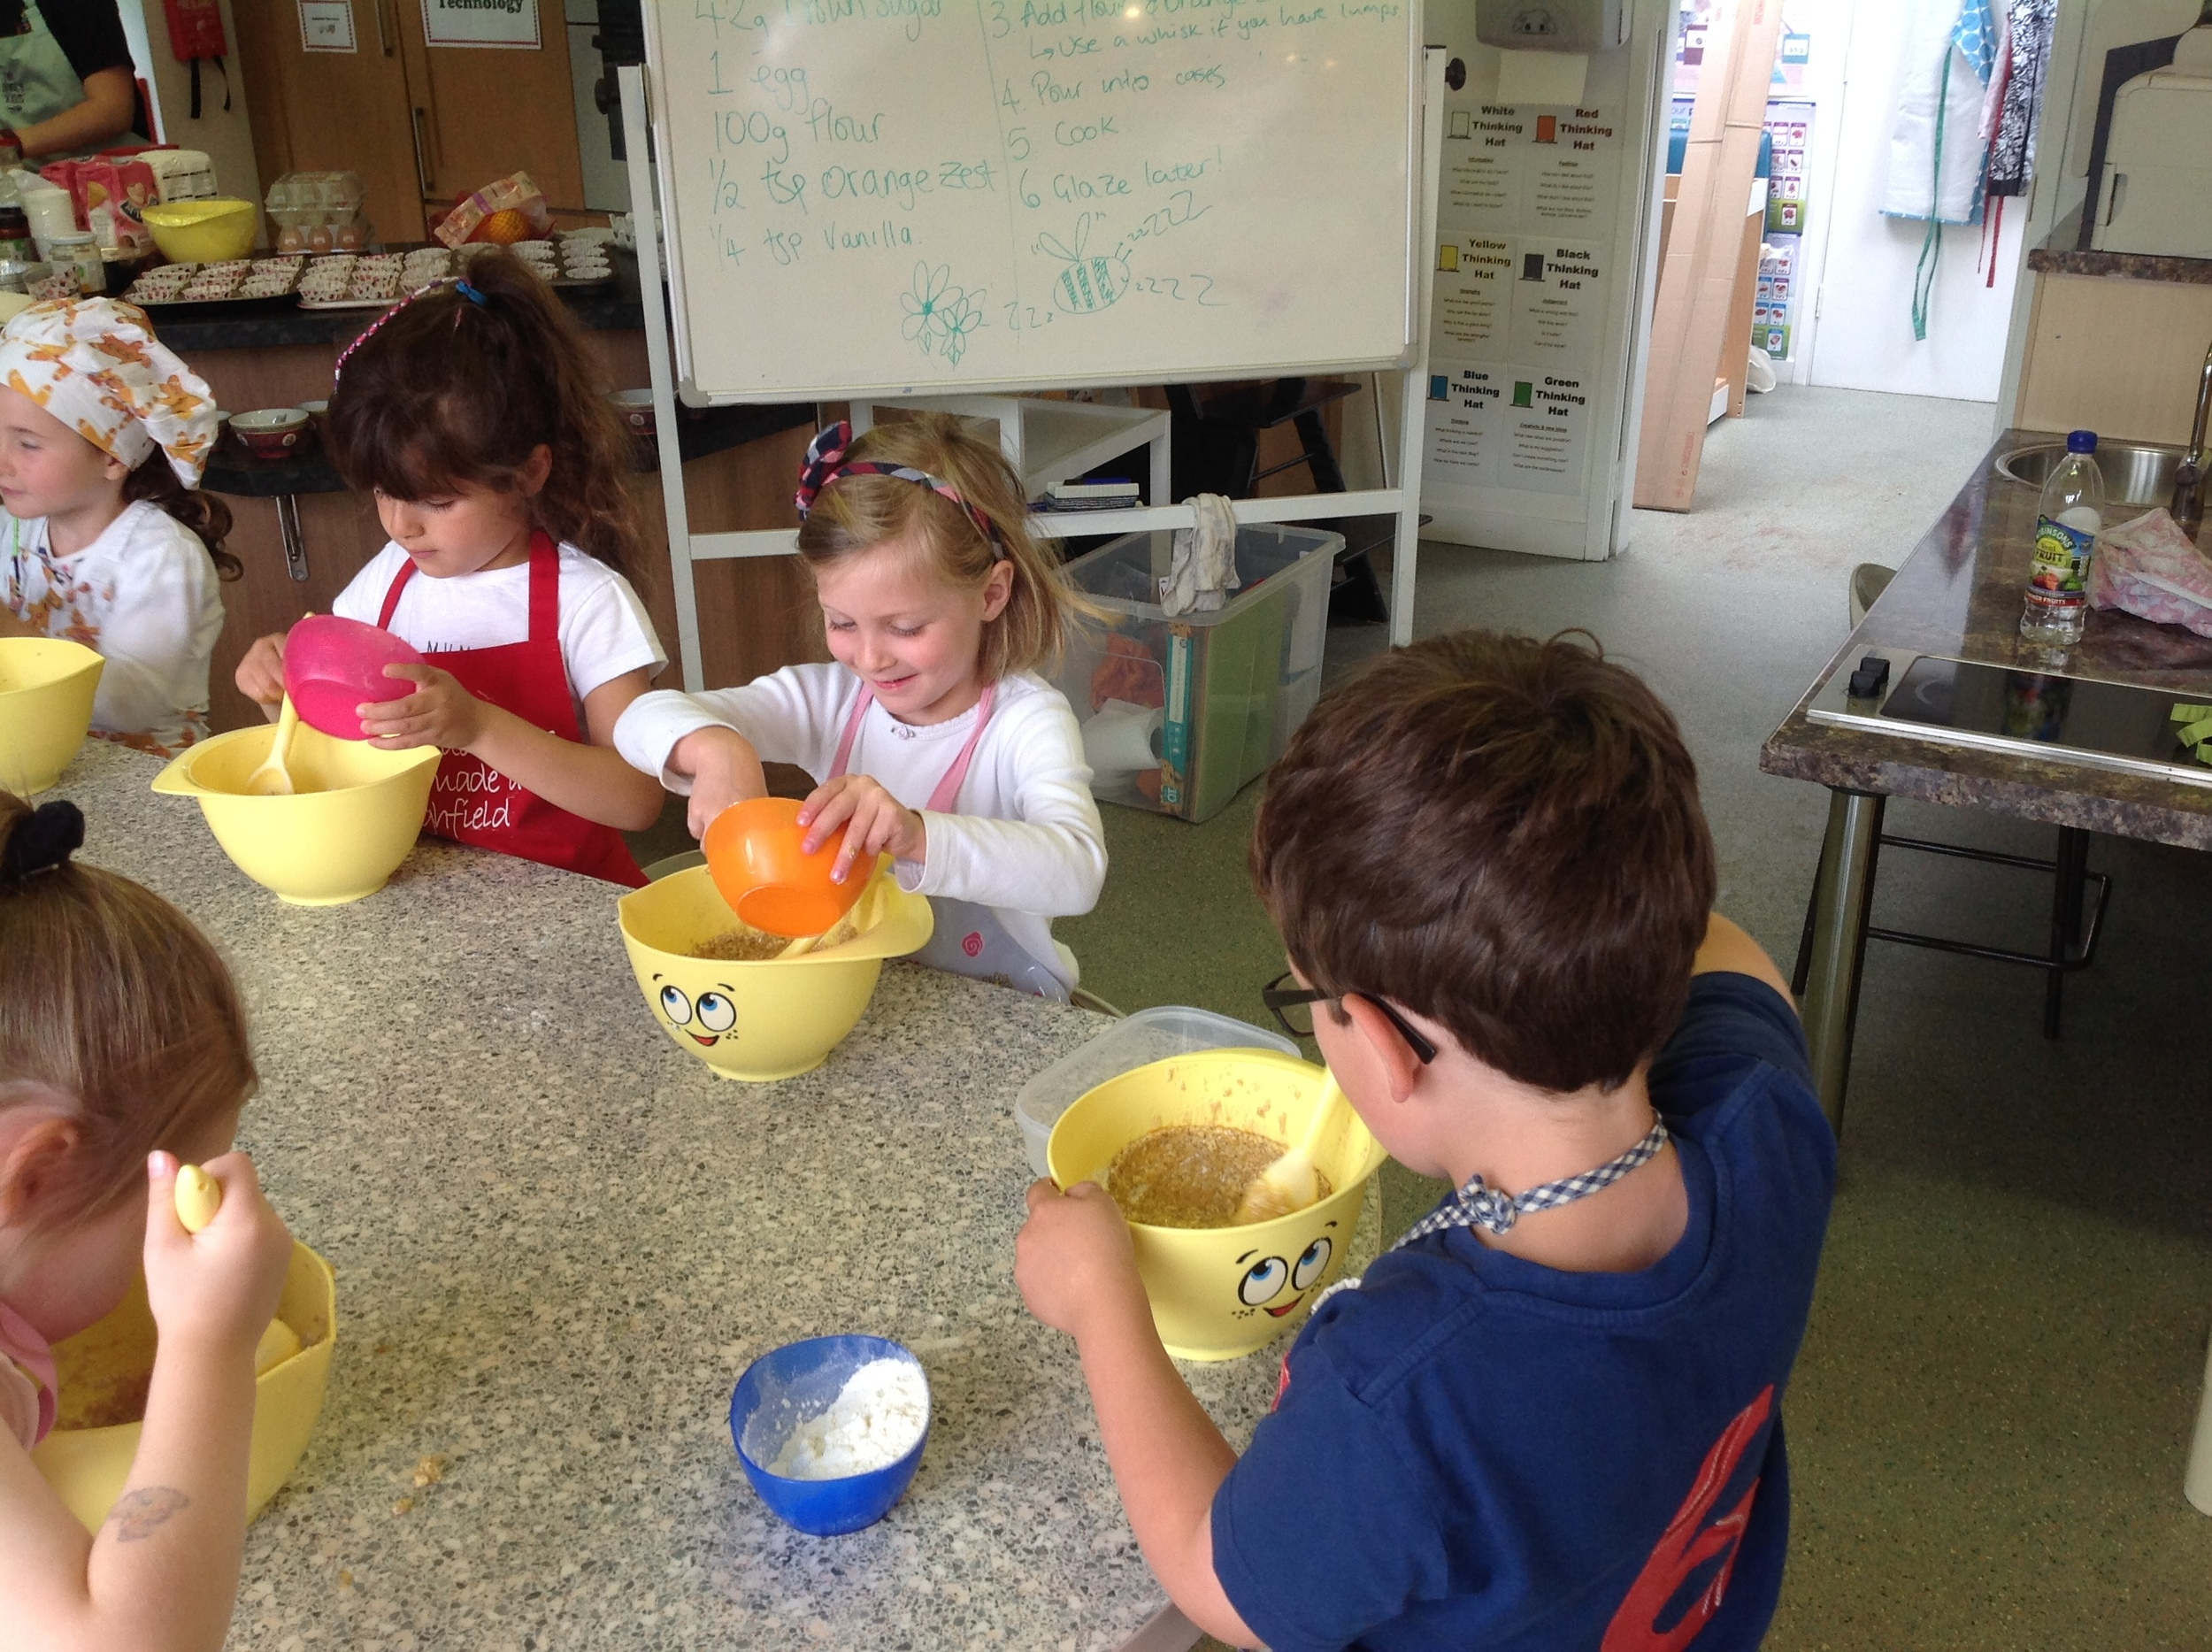 Mixing in the flour